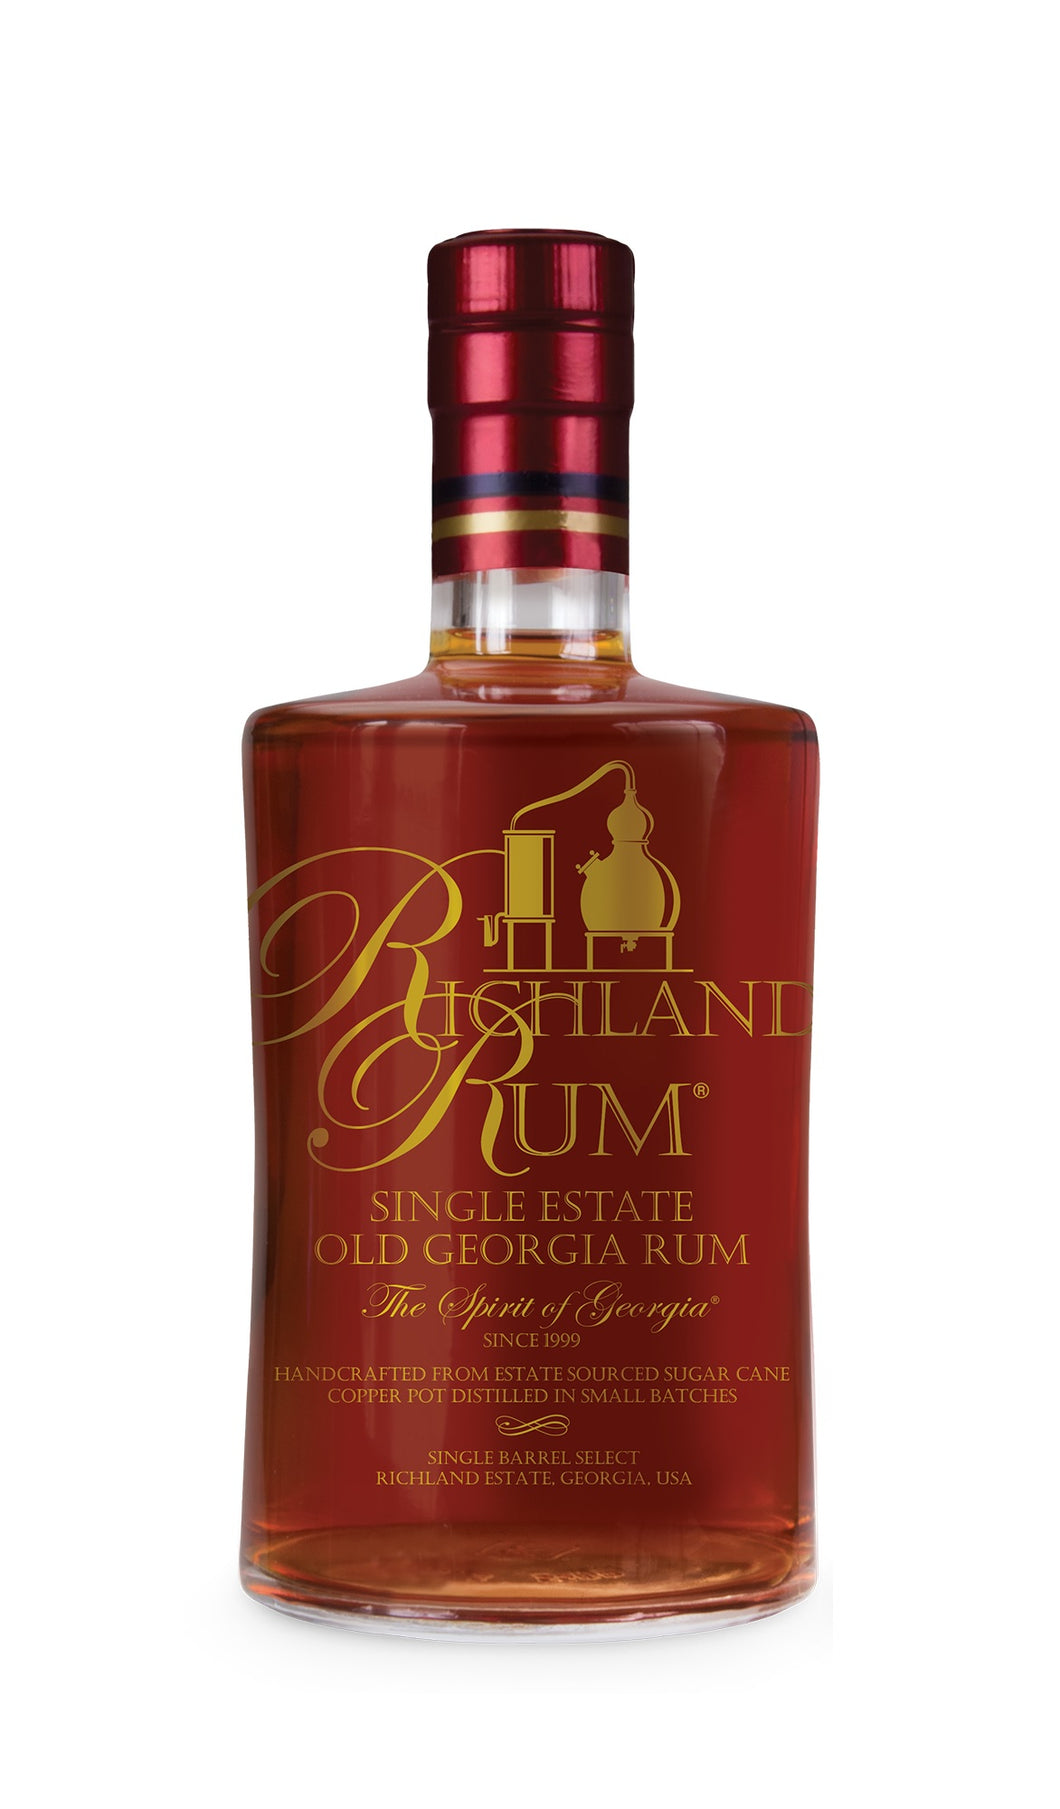 Richland Single Estate Old South Georgia Rum - 375ml